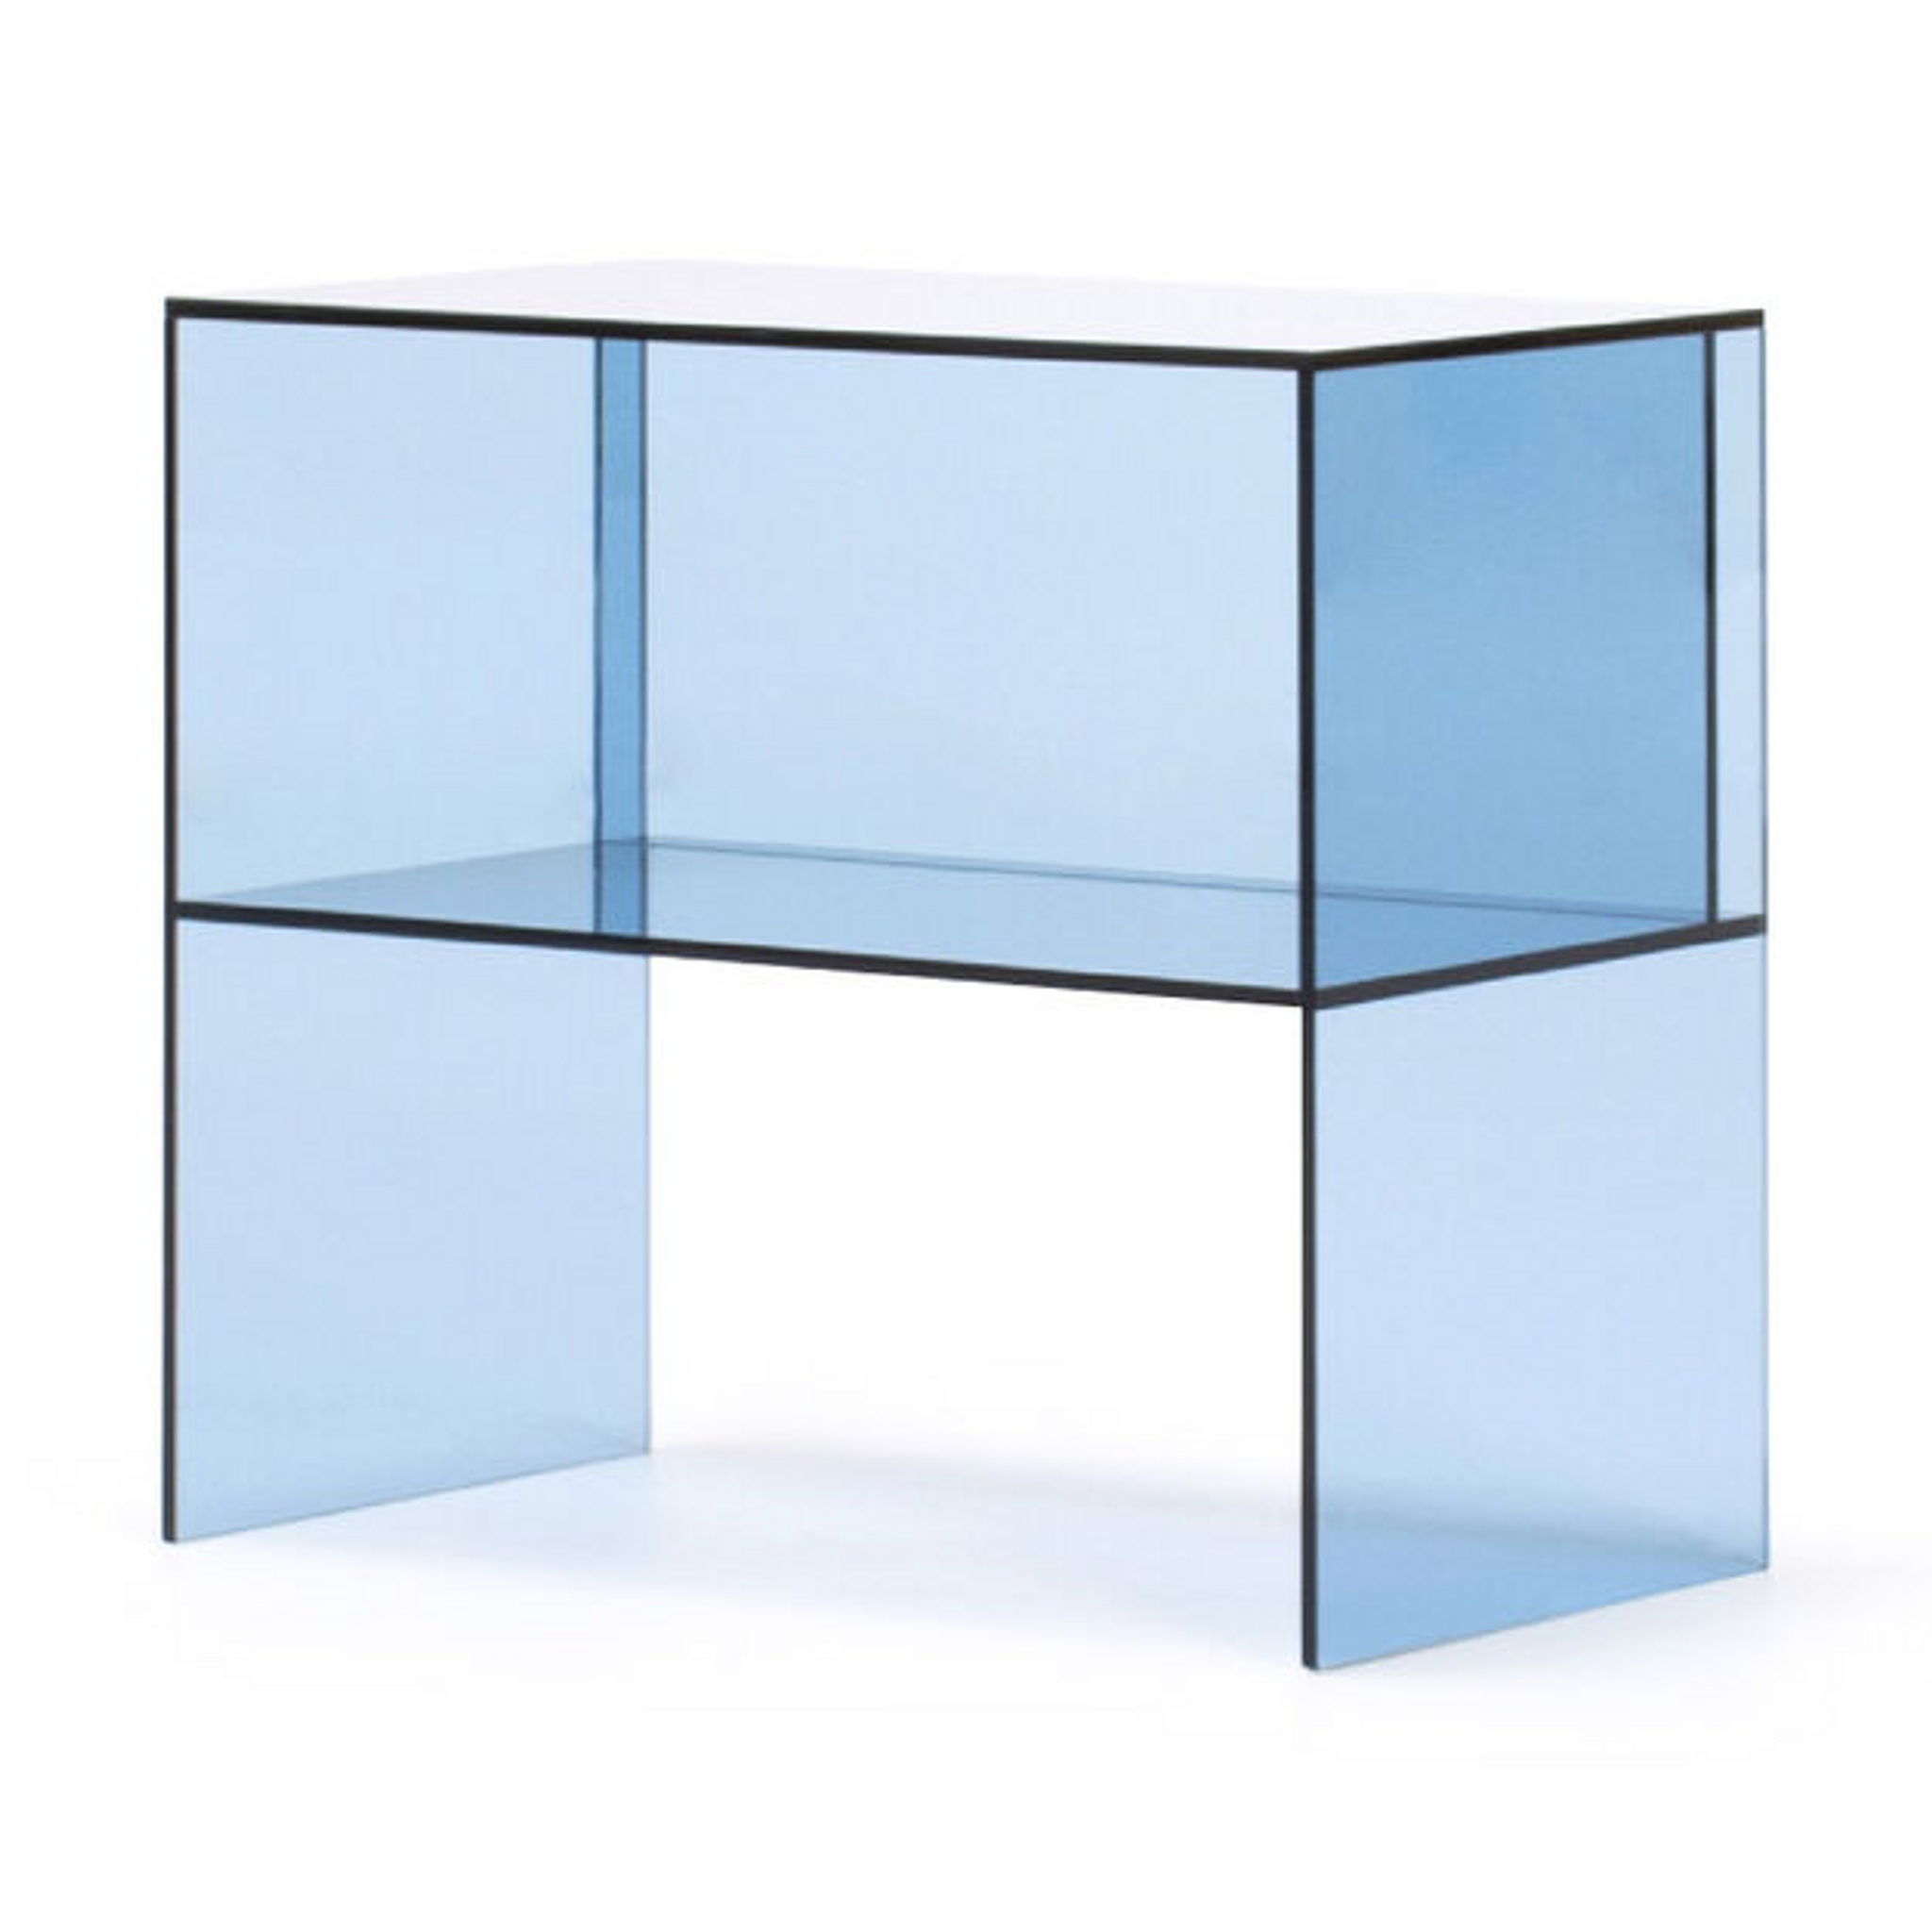 momo Two-Way Side Table blue acrylic lucite modern accent